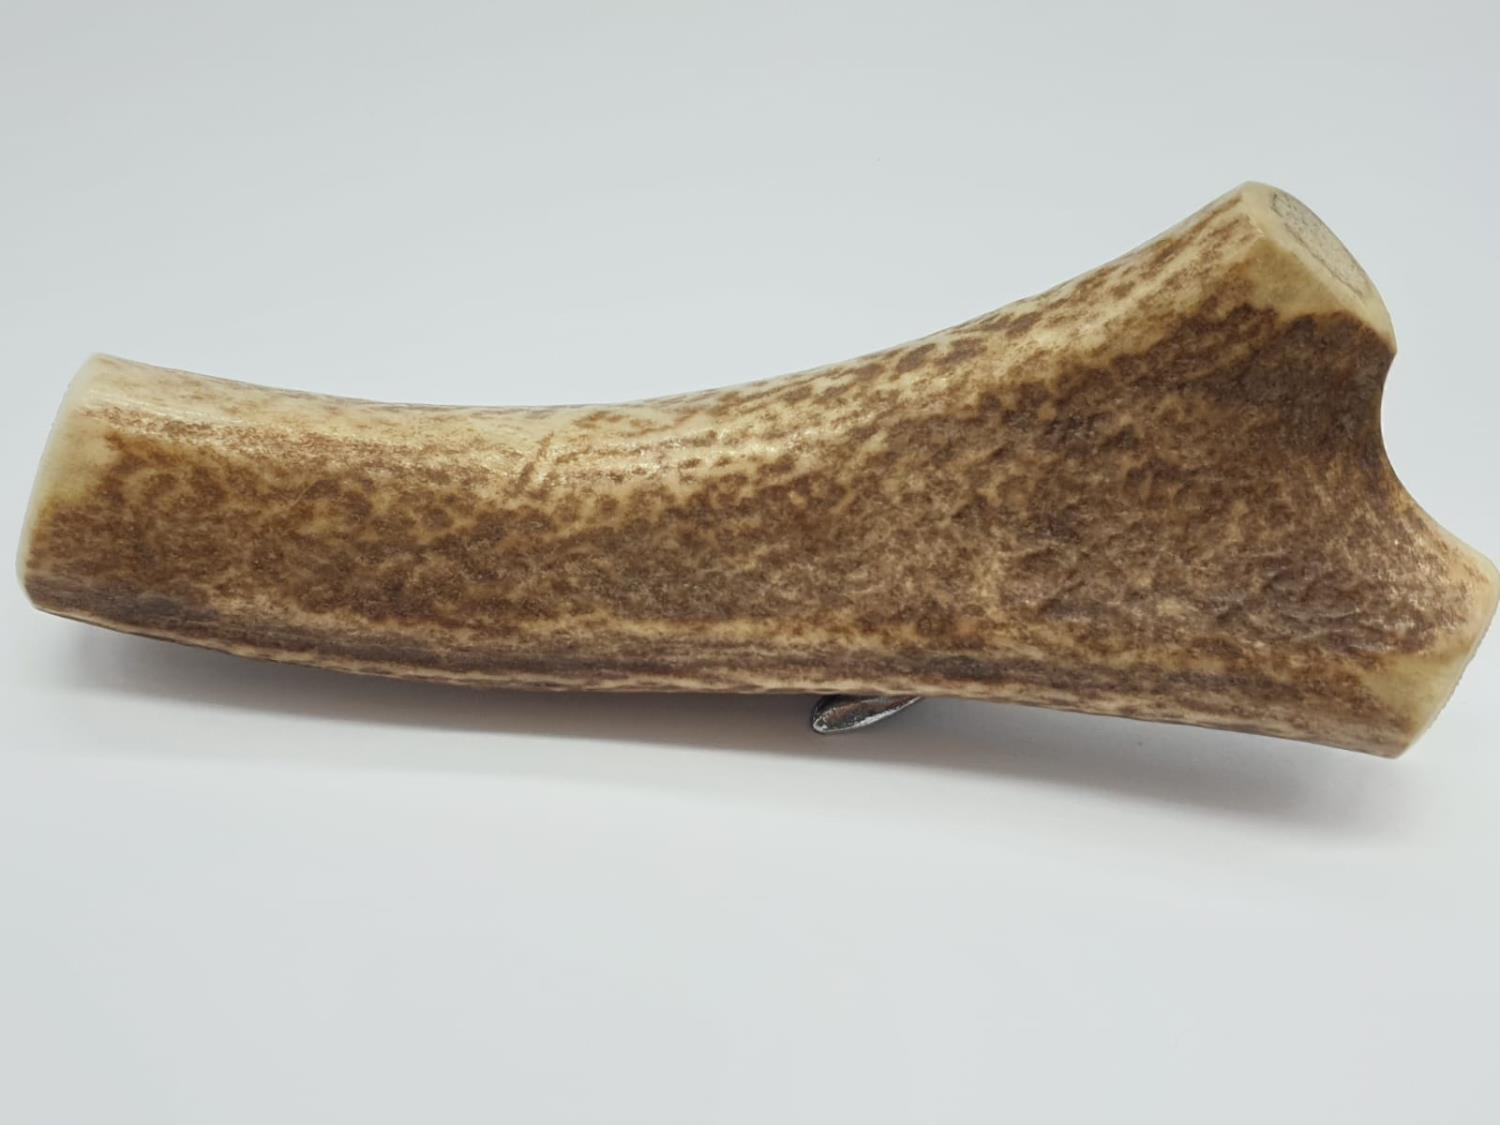 Piece of Antelope HORN with a white metal figure of a SEAL mounted on it. 122g 16cm long. - Image 6 of 7